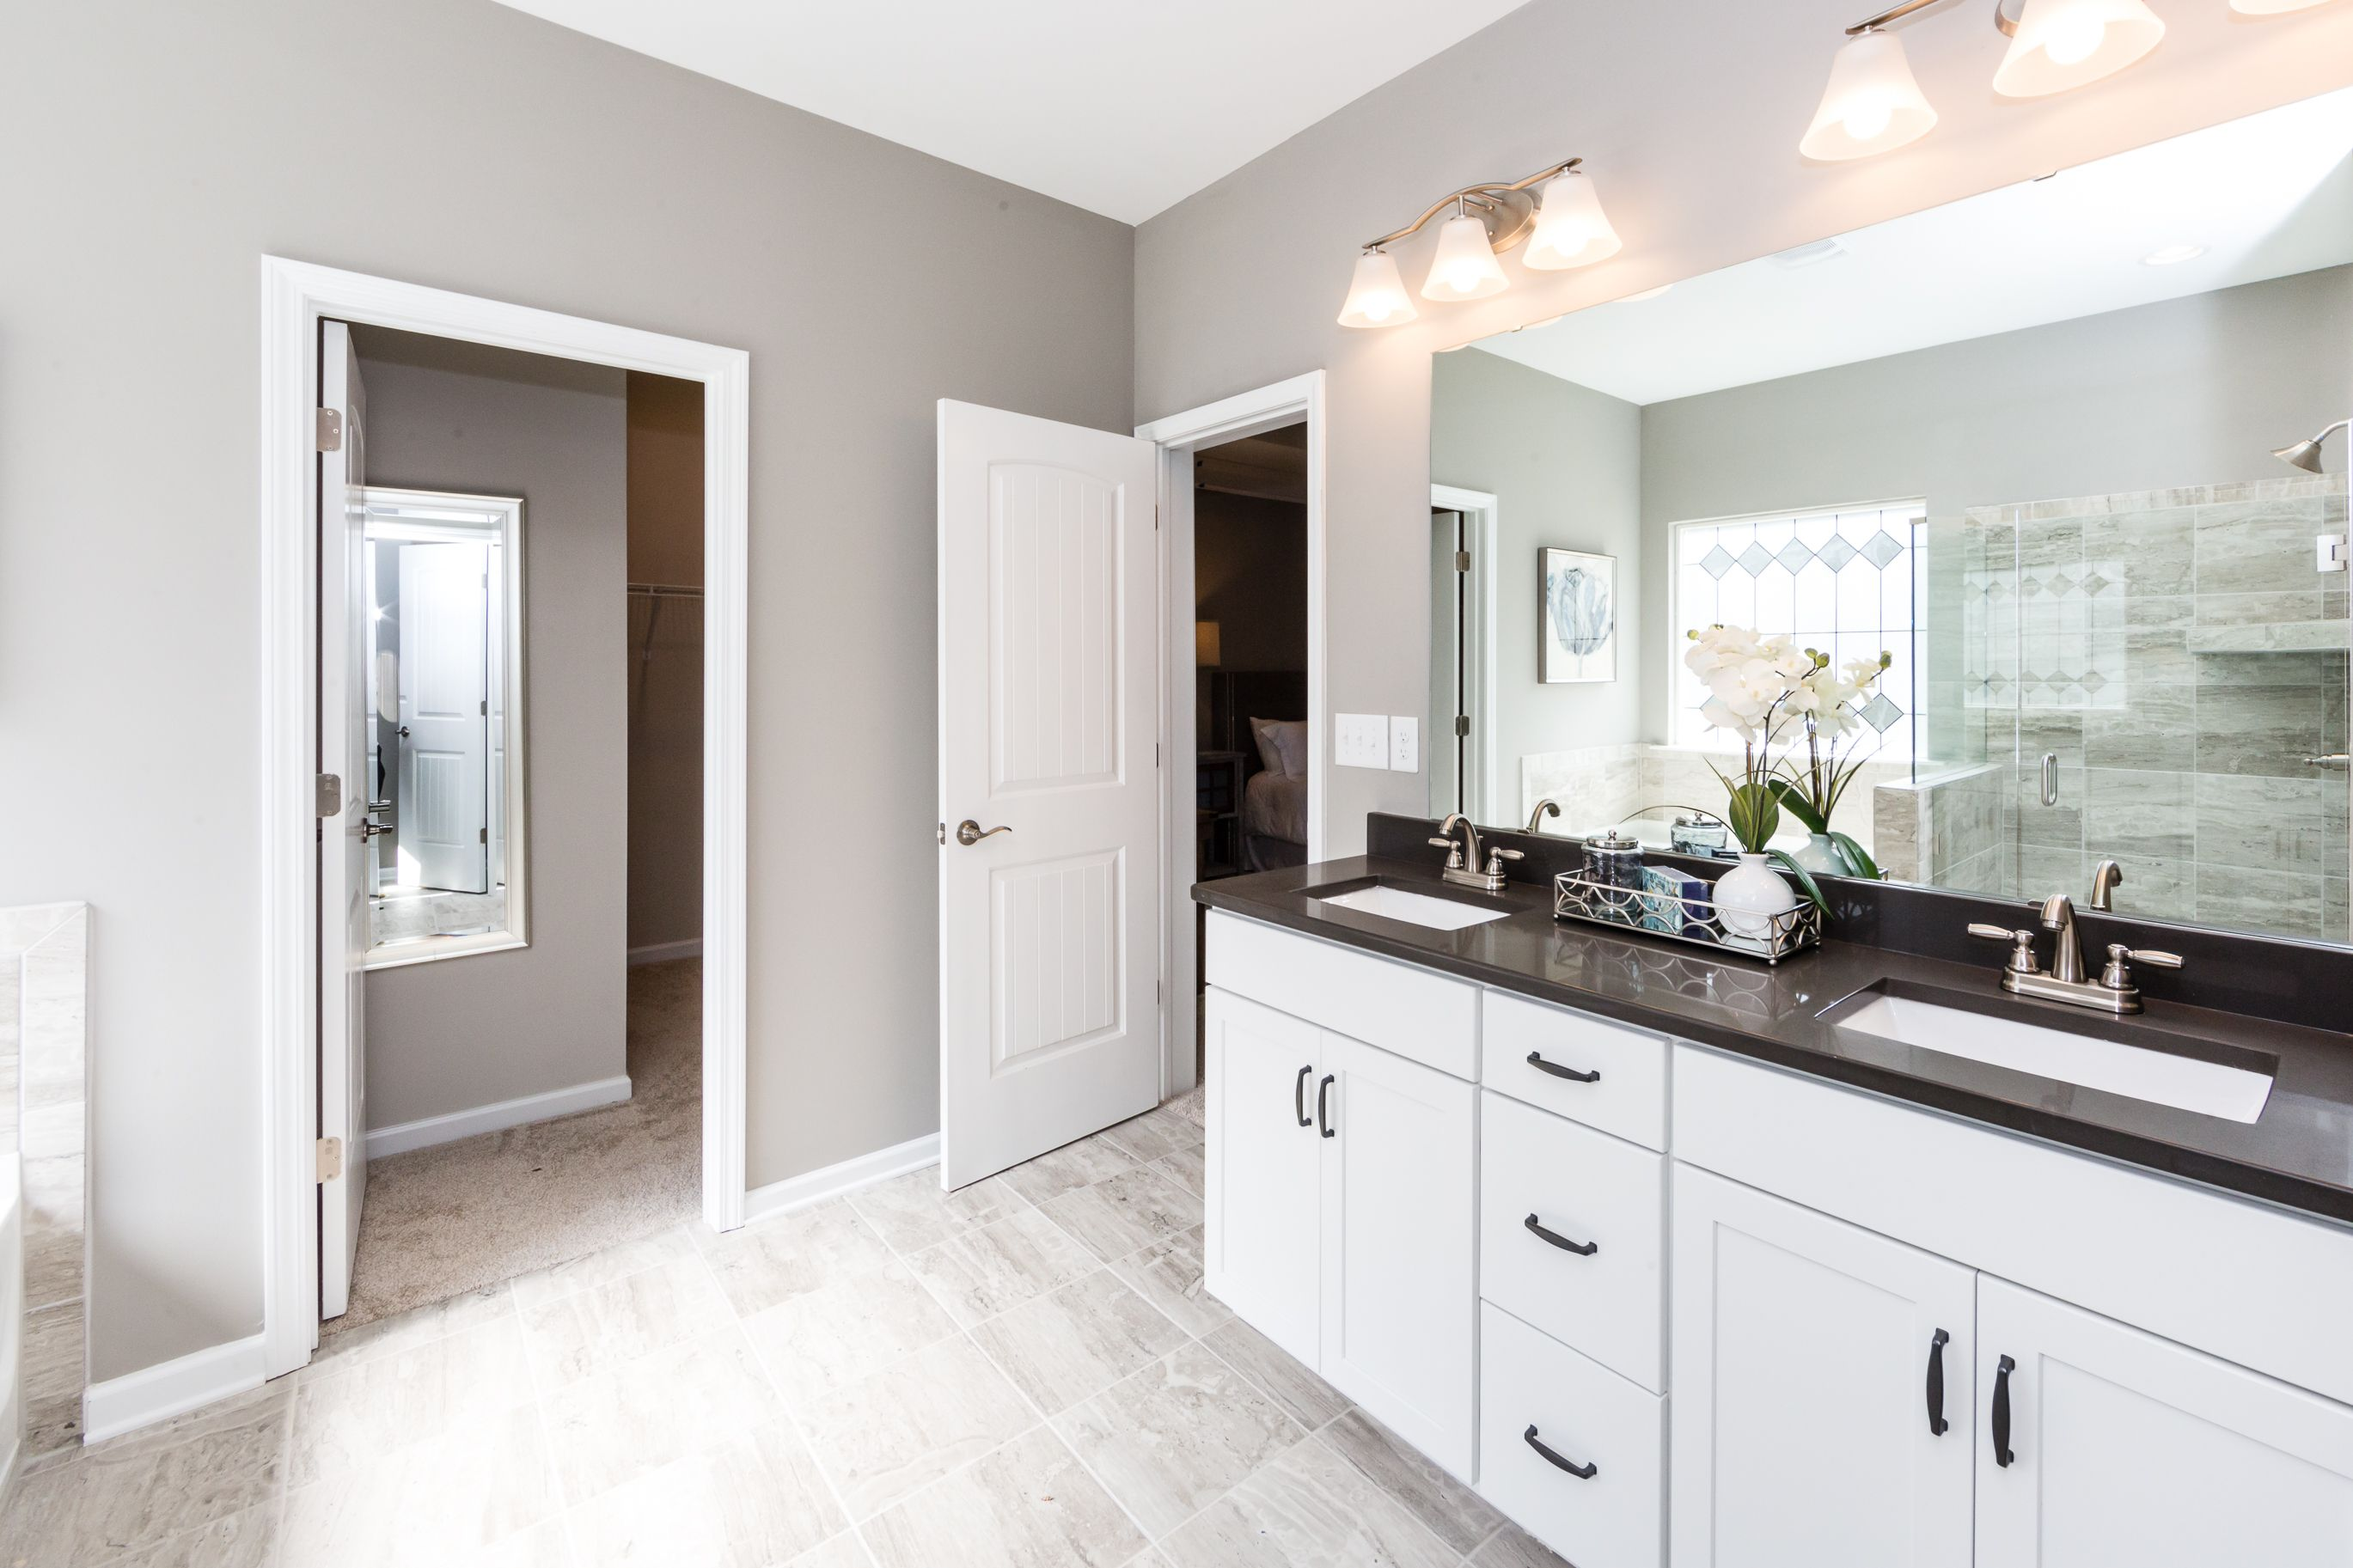 Bathroom featured in The Buffington By Smith Douglas Homes in Huntsville, AL